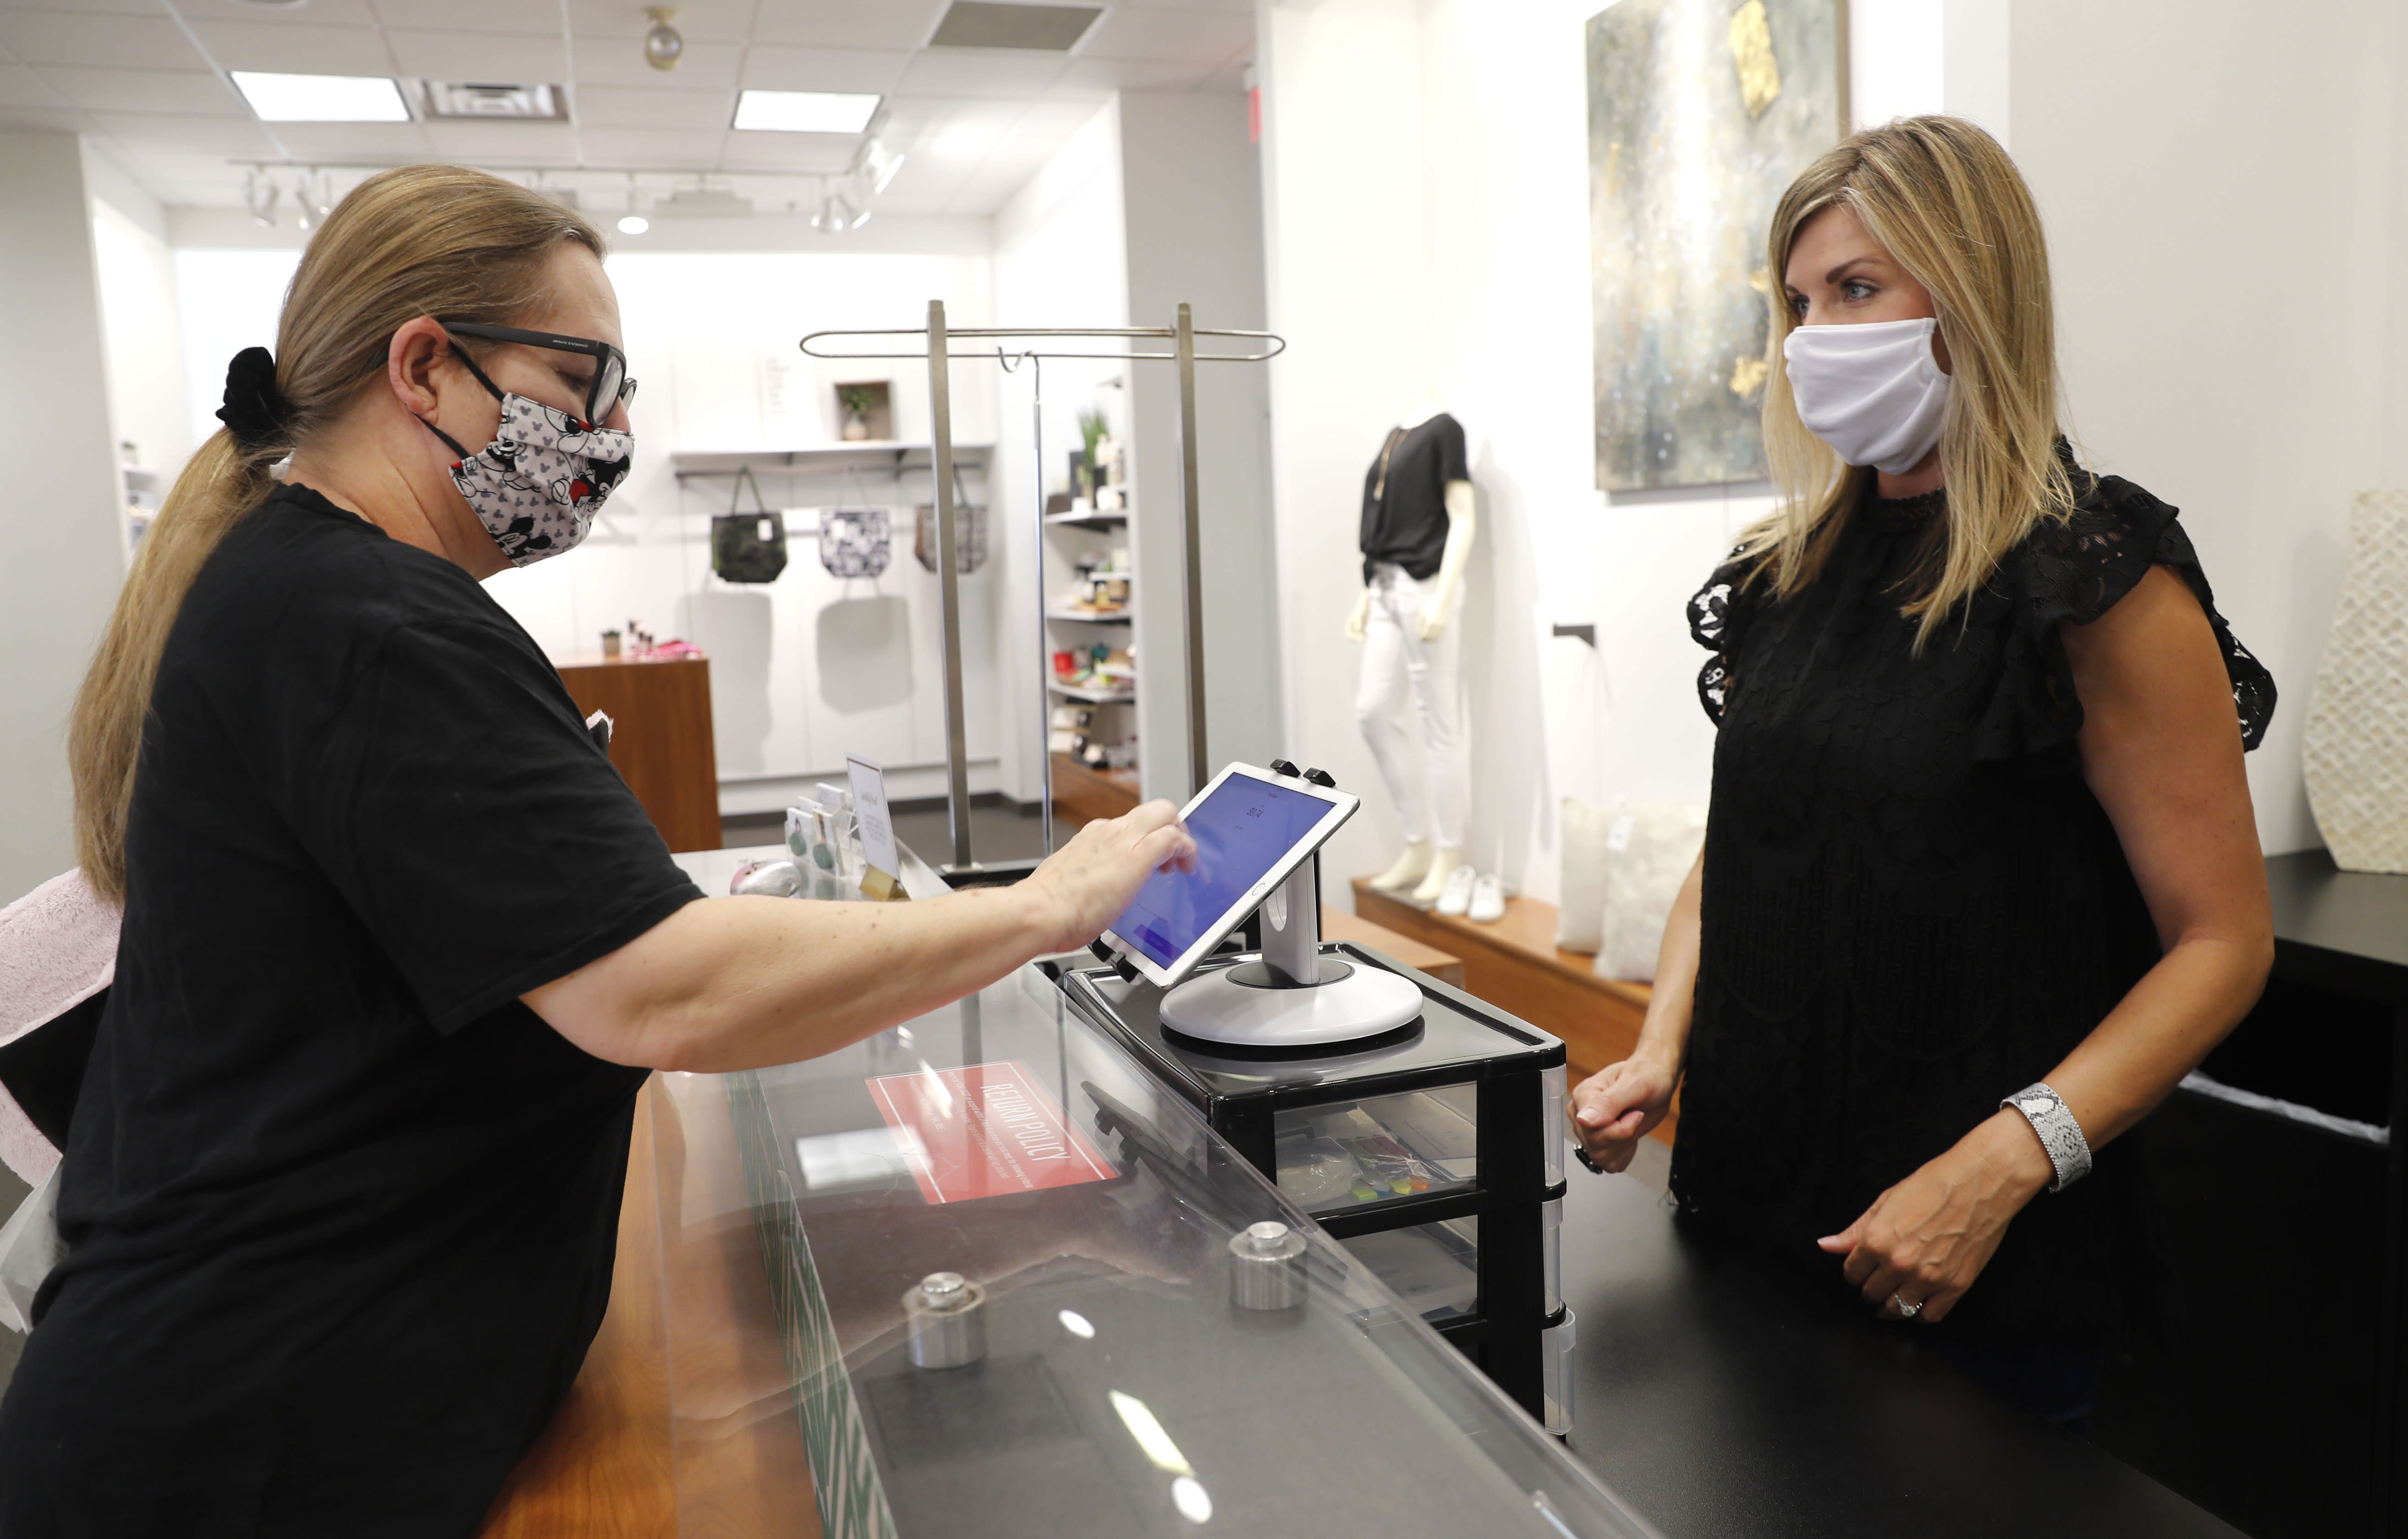 """FILE In this Wednesday, May 13, 2020 FILE photo, Monique Kursar, left, completes a purchase with Amy Witt, owner of the Velvet Window, in Dallas. For small retailers across the country, the coronavirus outbreak has turned an already challenging business environment into never-ending uncertainty. Witt might have 20 customers on a good day in her women's clothing store, and then none the next. """"It's a rollercoaster we ride every day,"""" says Witt (AP Photo/LM Otero)"""